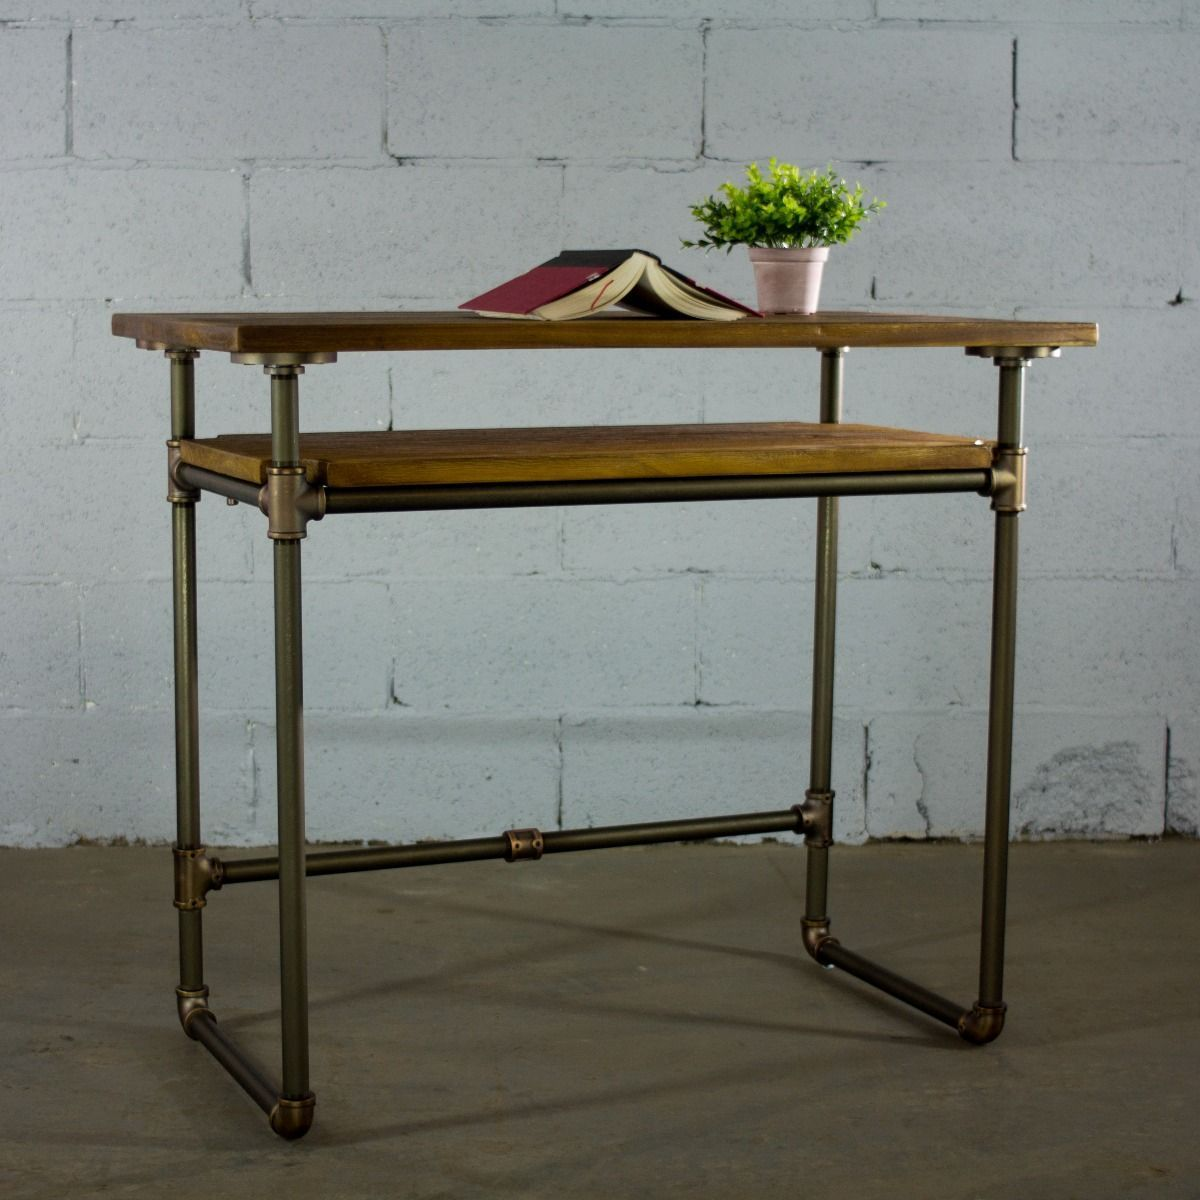 Modern Industrial Home Office Desk with Lower Shelf - MODERNY